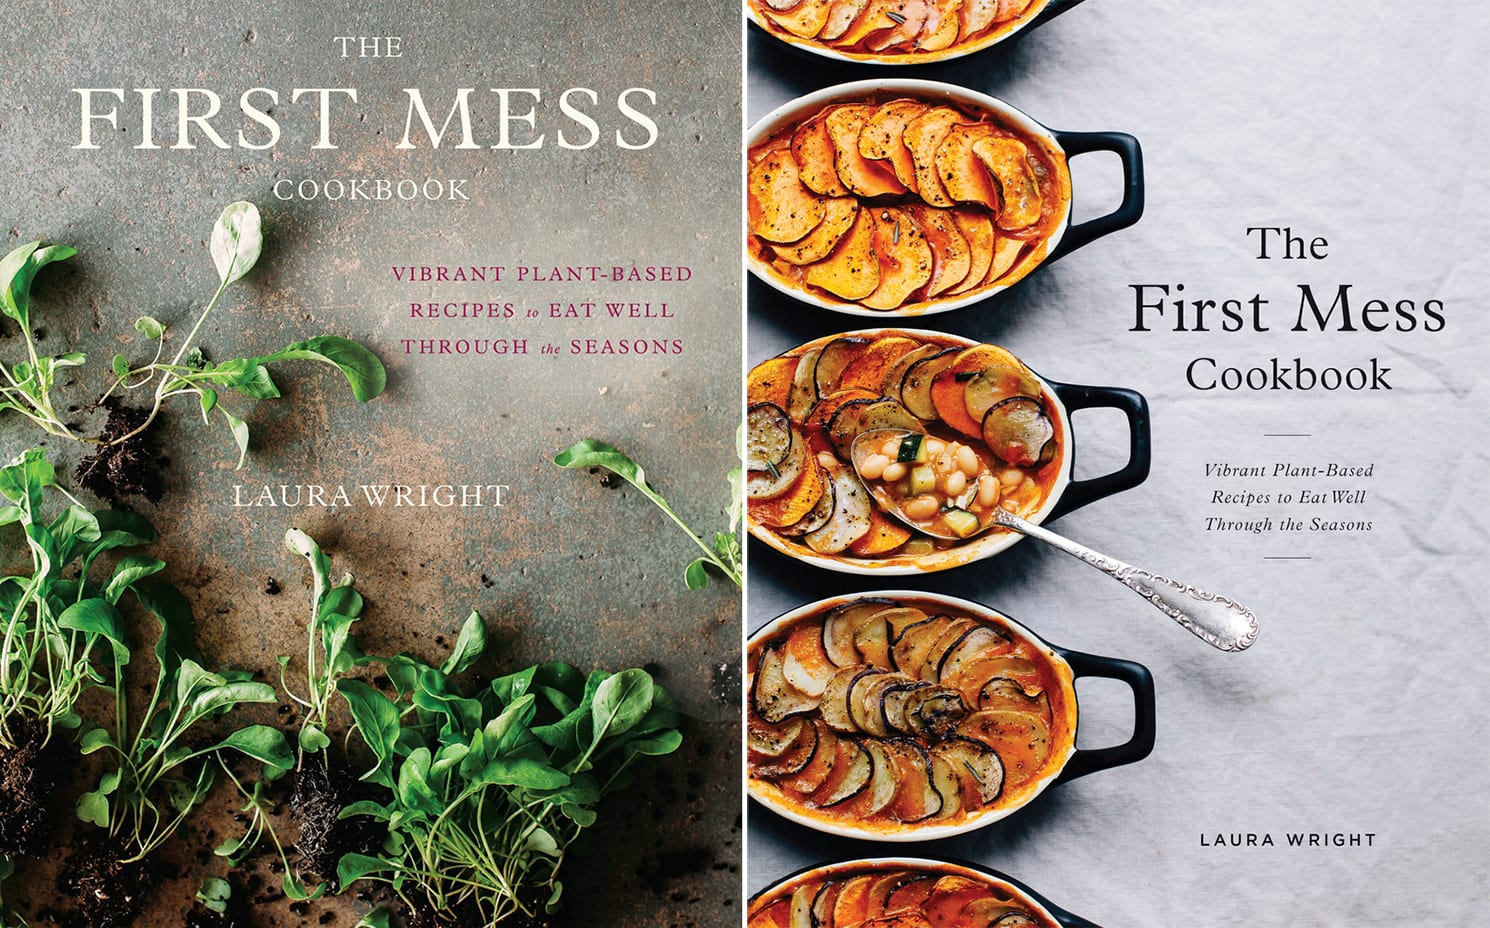 cookbook mess plant based recipes covers holiday gift guide canadian broccoli kitchen tempeh smoky caesar bits thefirstmess through vibrant